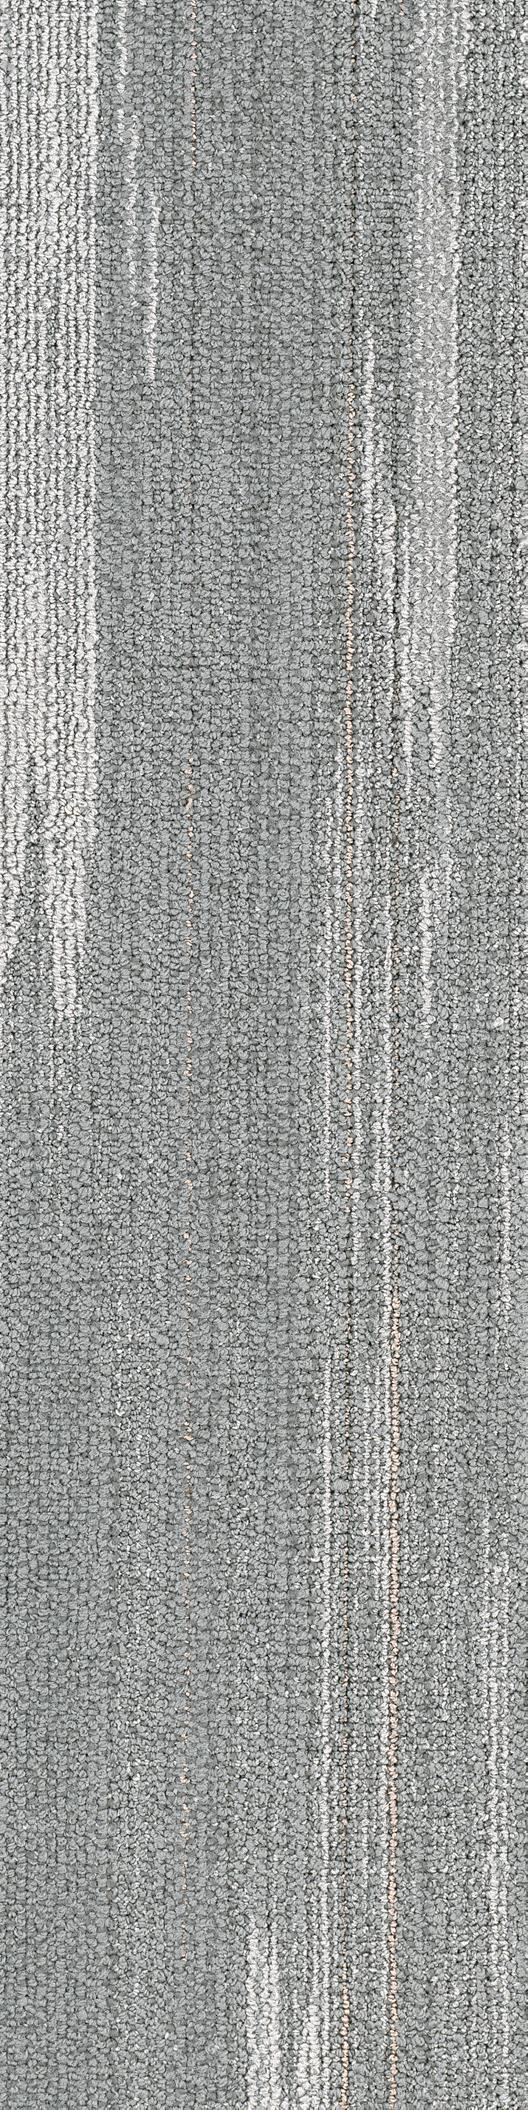 Home Shaw Contract Textured carpet, Commercial carpet